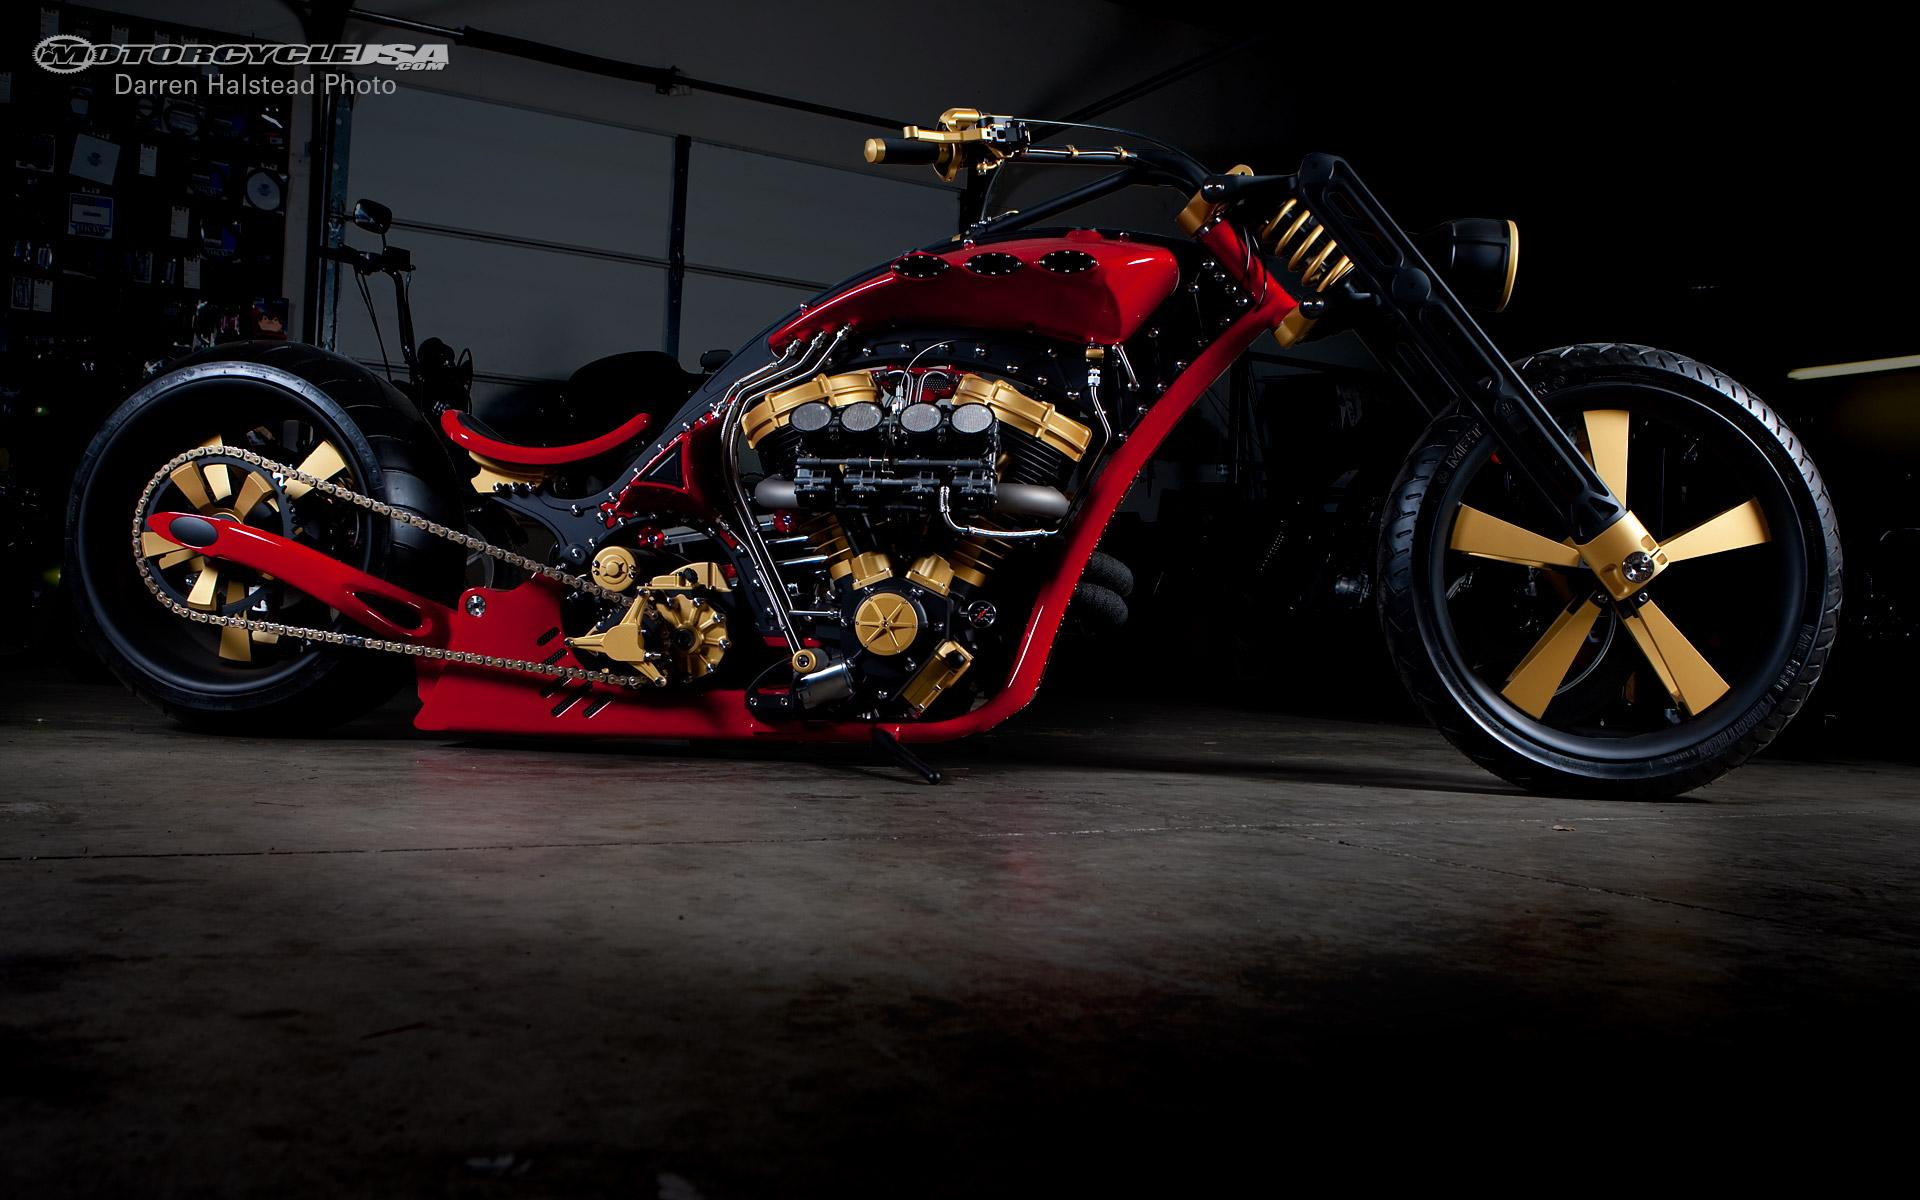 Harley Davidson Hd Wallpaper Free Download Pixelstalk Wallpapers Screensavers Live